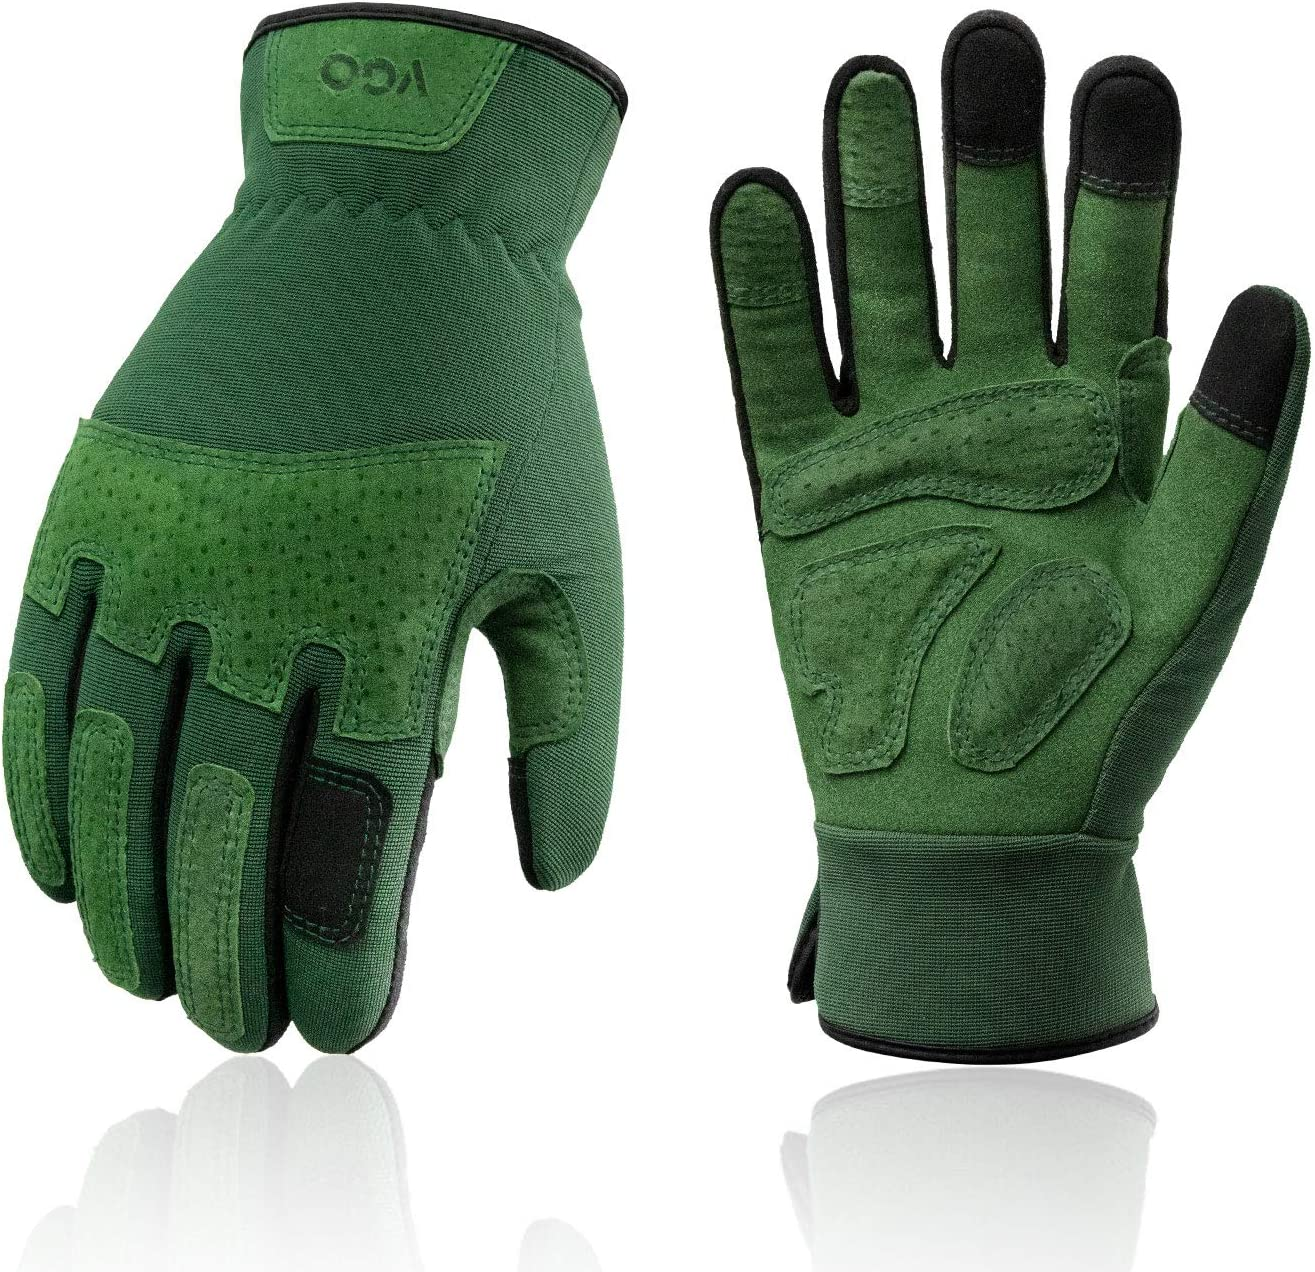 Vgo 1-Pair Ladies' Synthetic Gardening Puncture- Gloves 100% Super-cheap quality warranty Leather